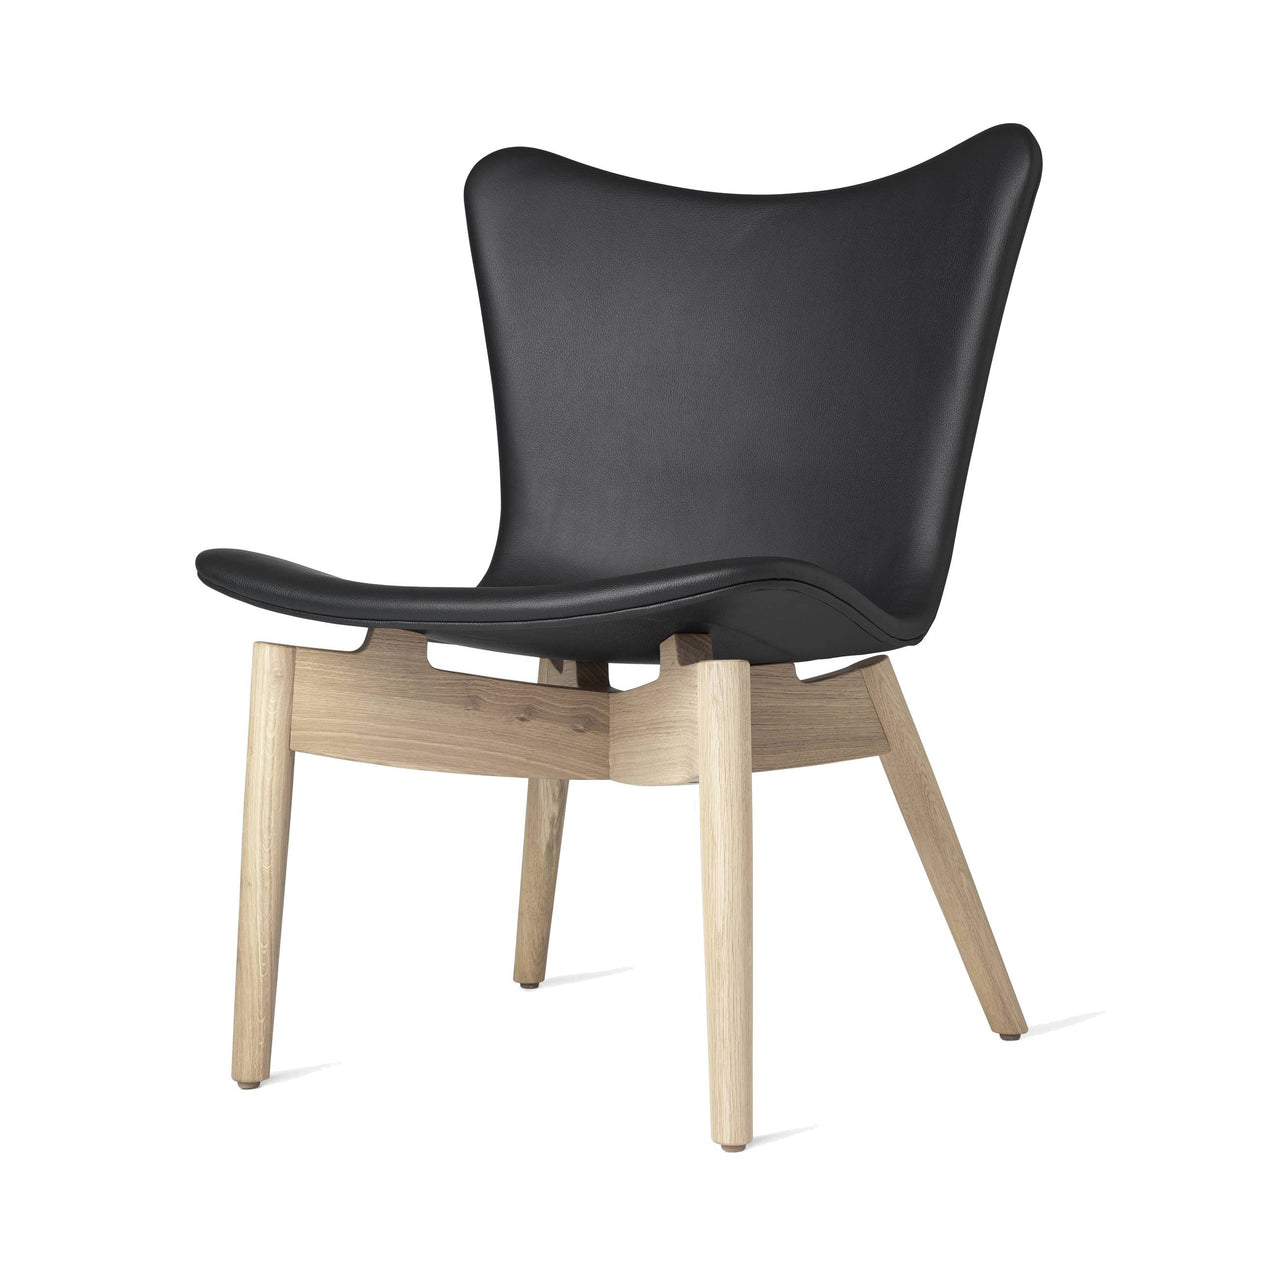 Shell Lounge Chair: Ultra Black Leather + Matte Stained Oak